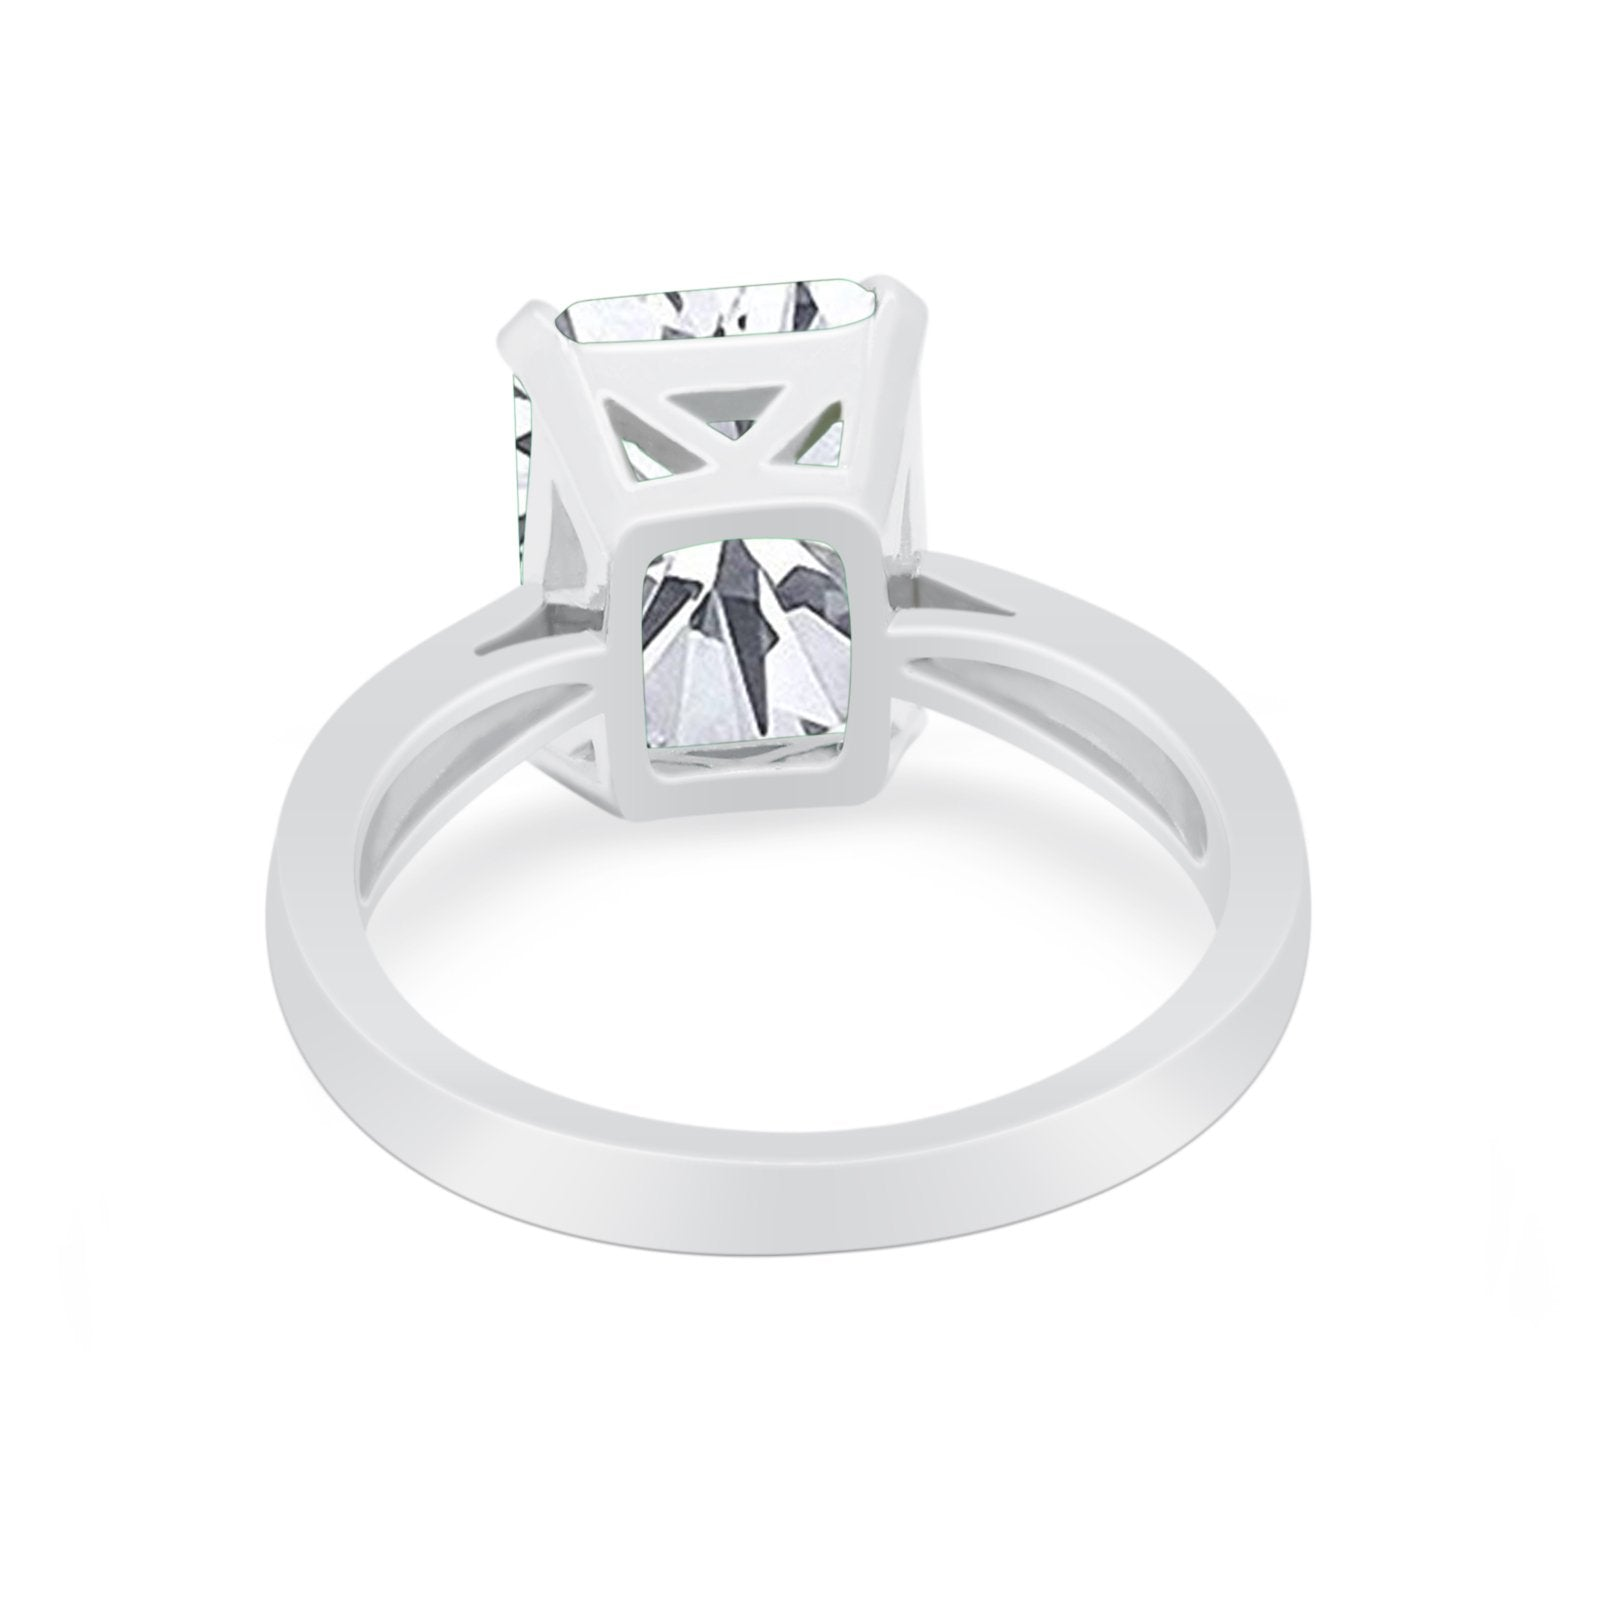 Solitaire Wedding Ring Simulated Cubic Zirconia 925 Sterling Silver